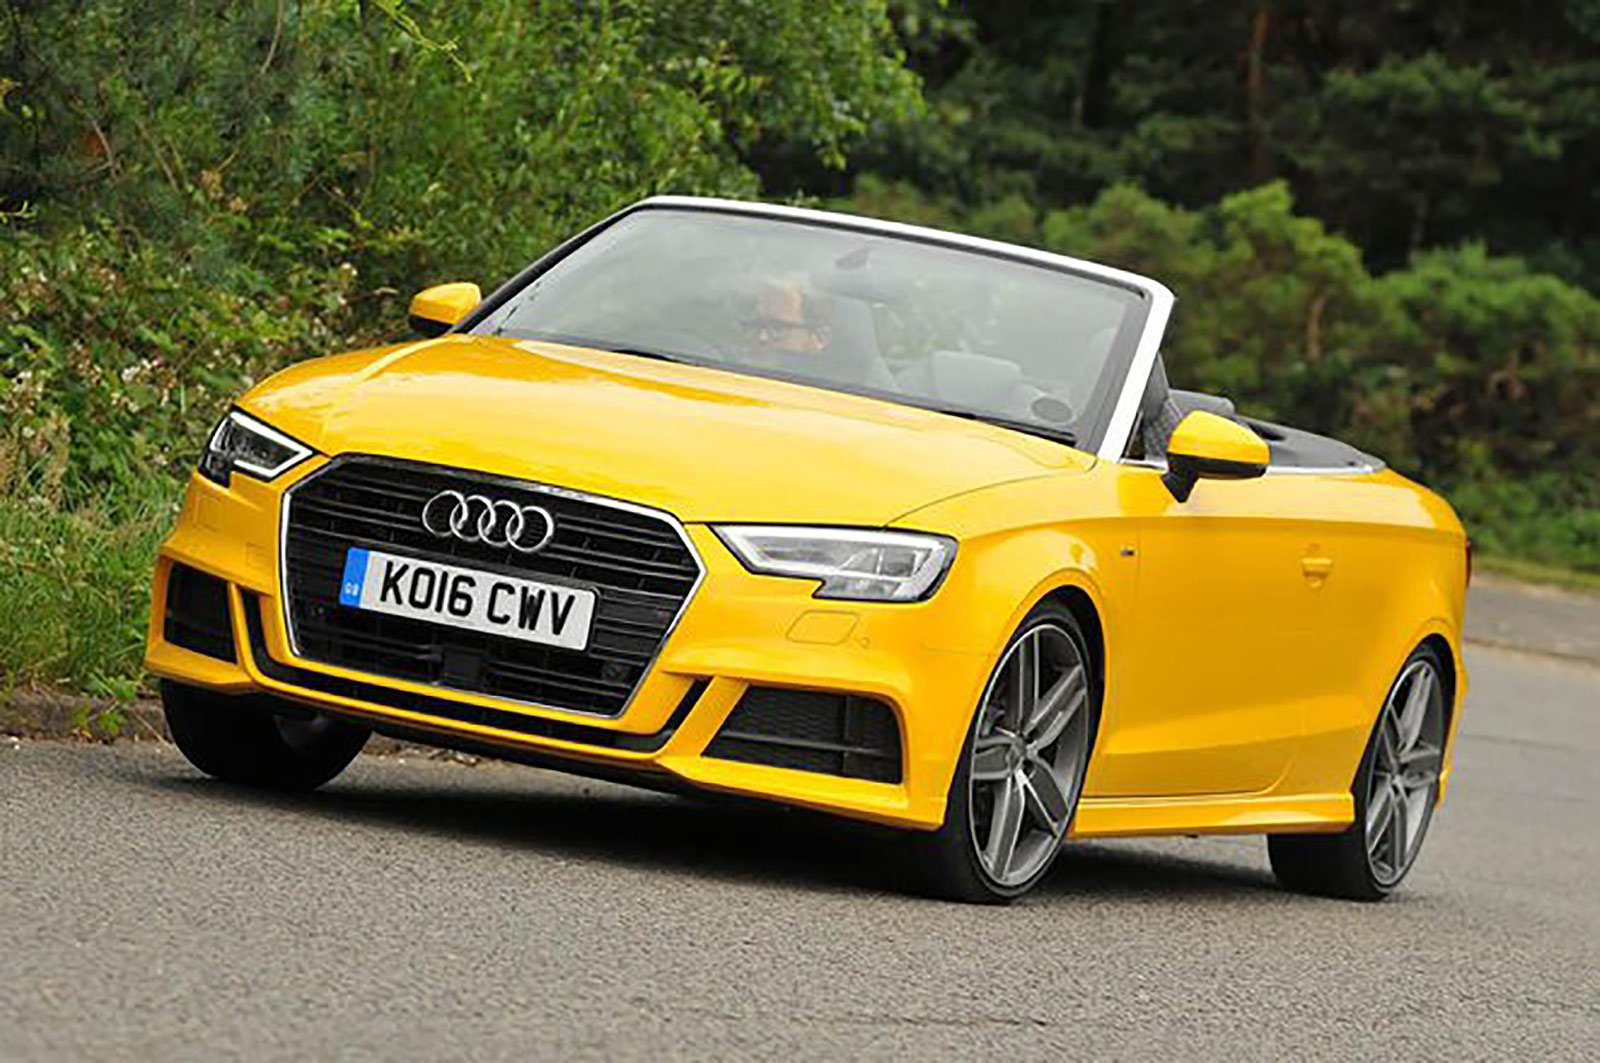 Audi A3 Cabriolet front three quarters